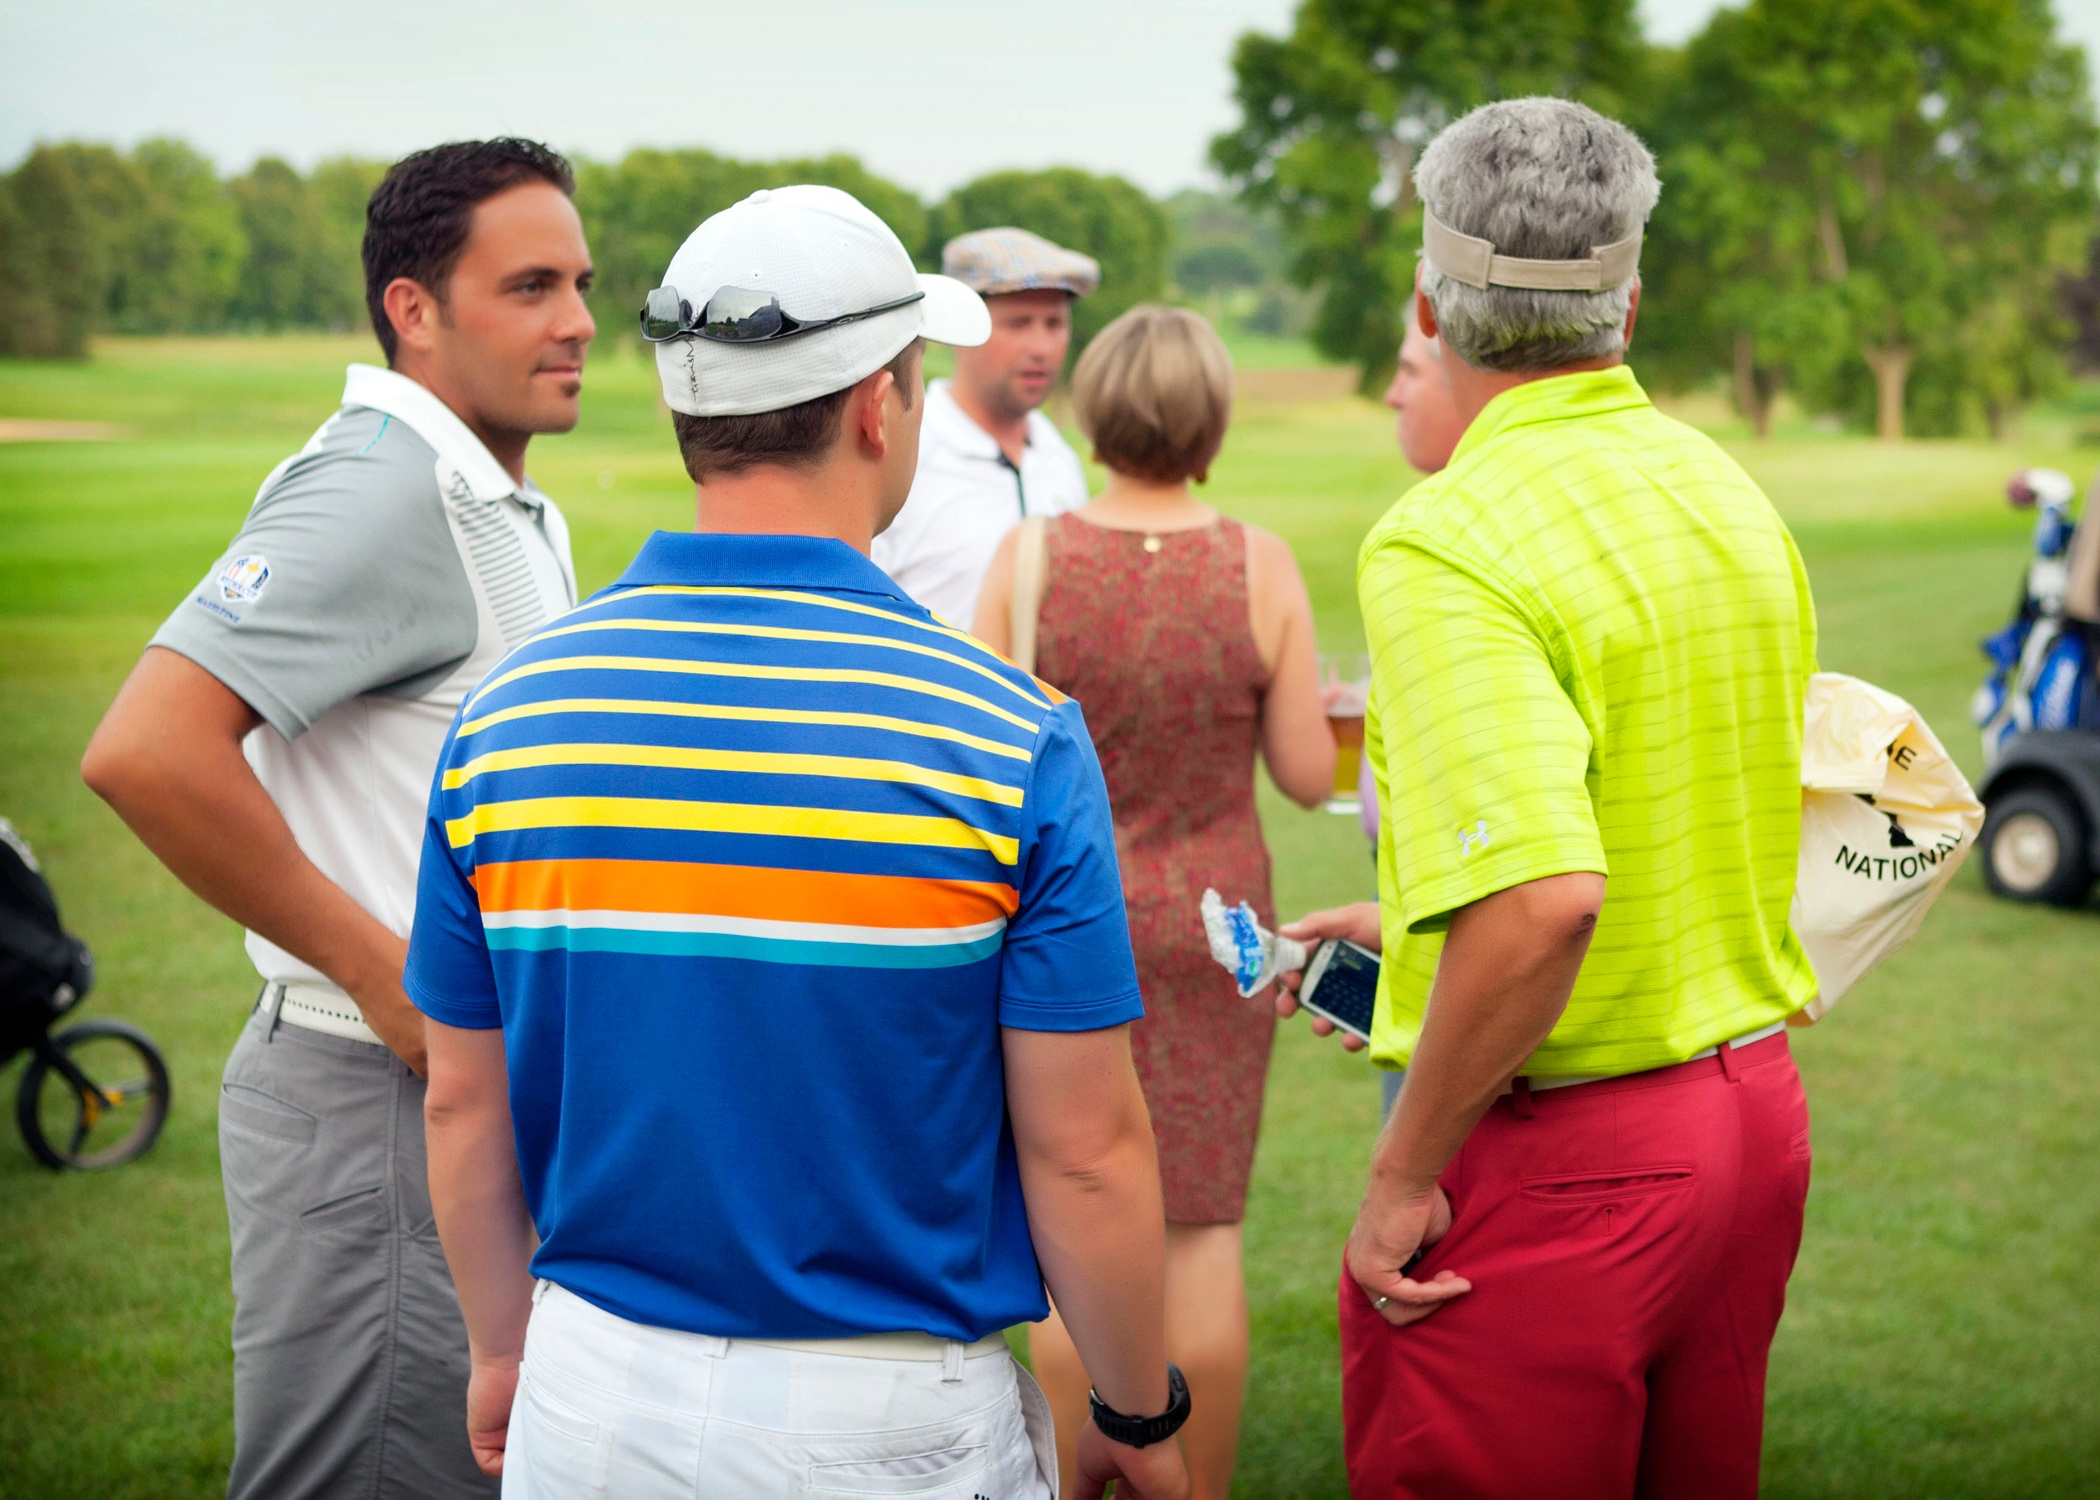 Golfers chatting after finishing play in a private golf tournament at Hazeltine National Golf Club